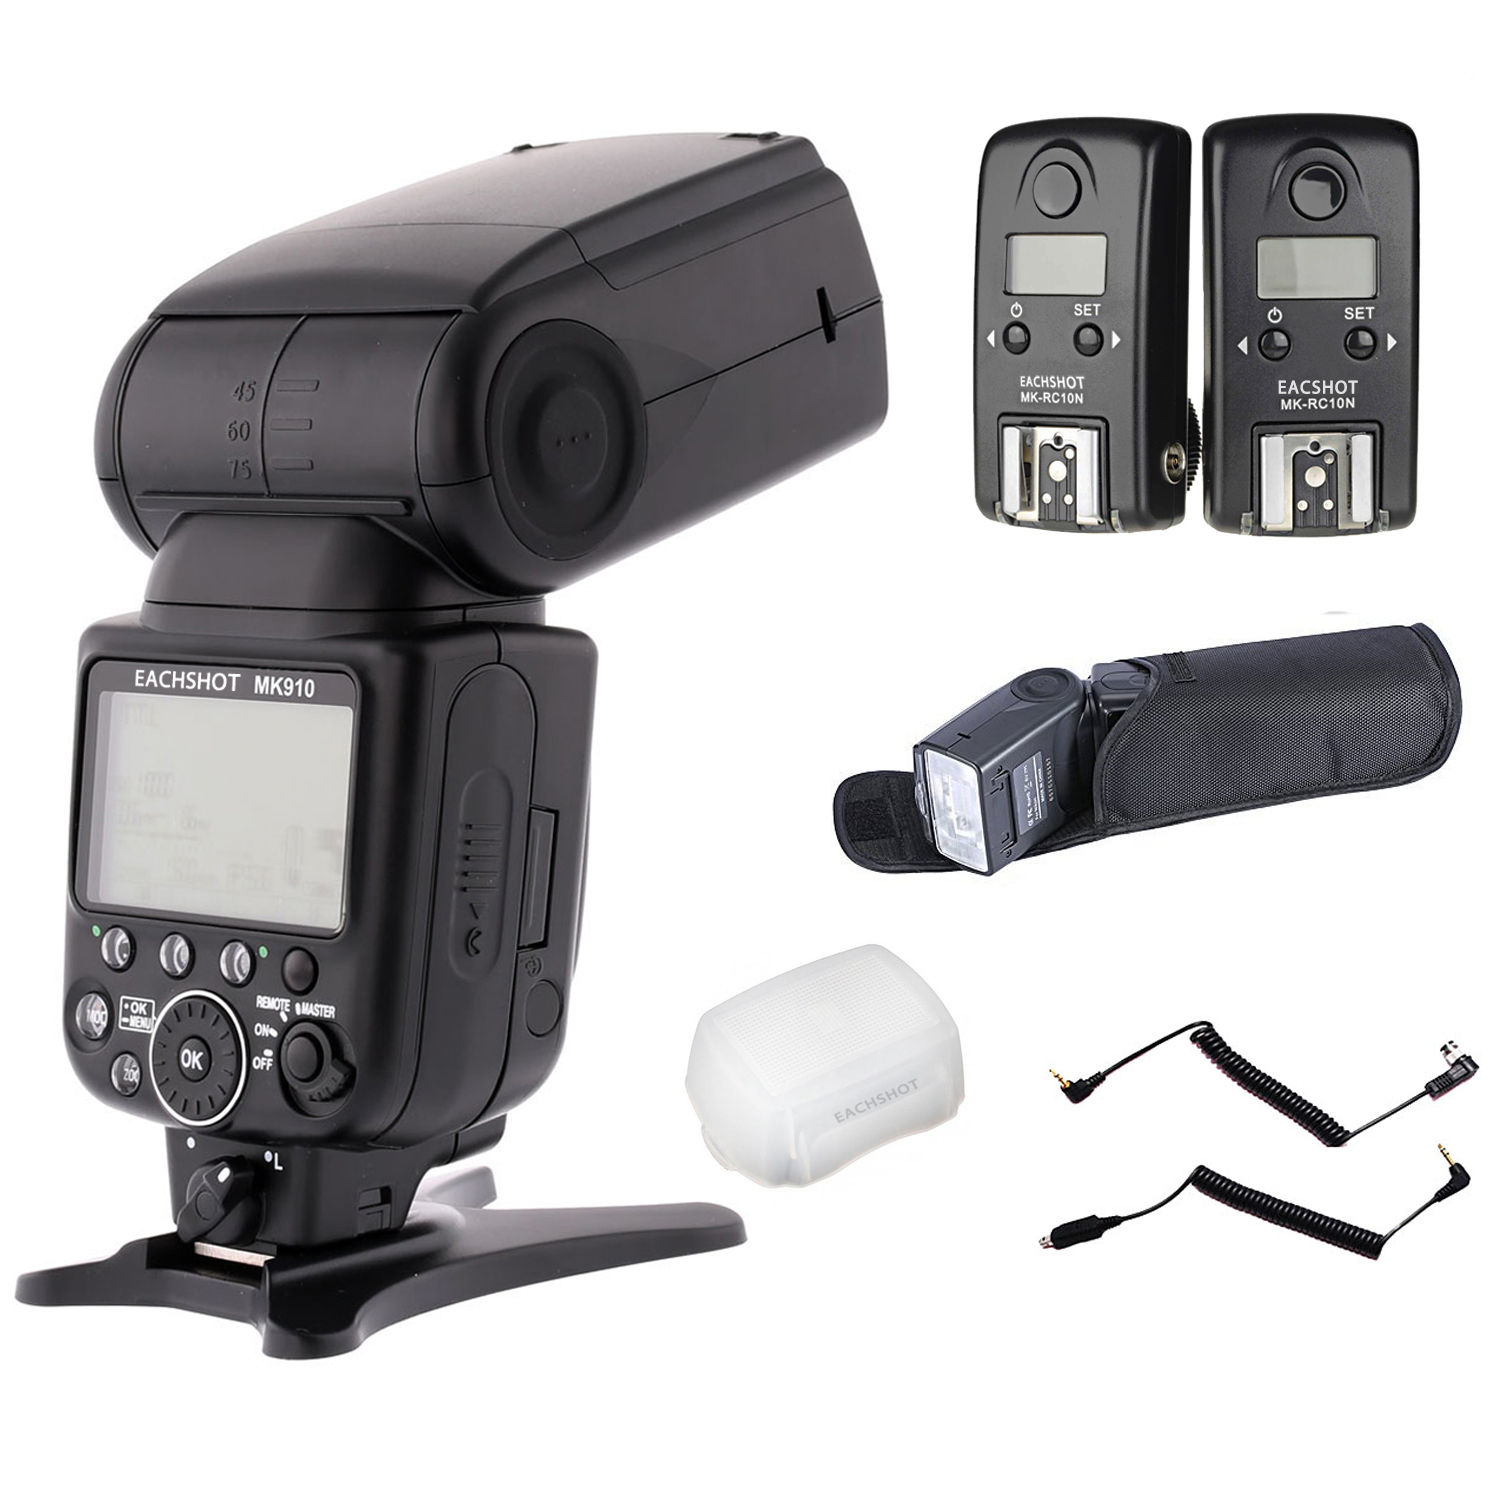 Meike MK-910 MK 910 TTL HSS Flash Speedlight + MK-RC10N RC10N HSS TTL Flash Trigger for Nikon meike mk 910 i ttl flash speedlight hss master as for nikon sb 910 d810 d750 d7100